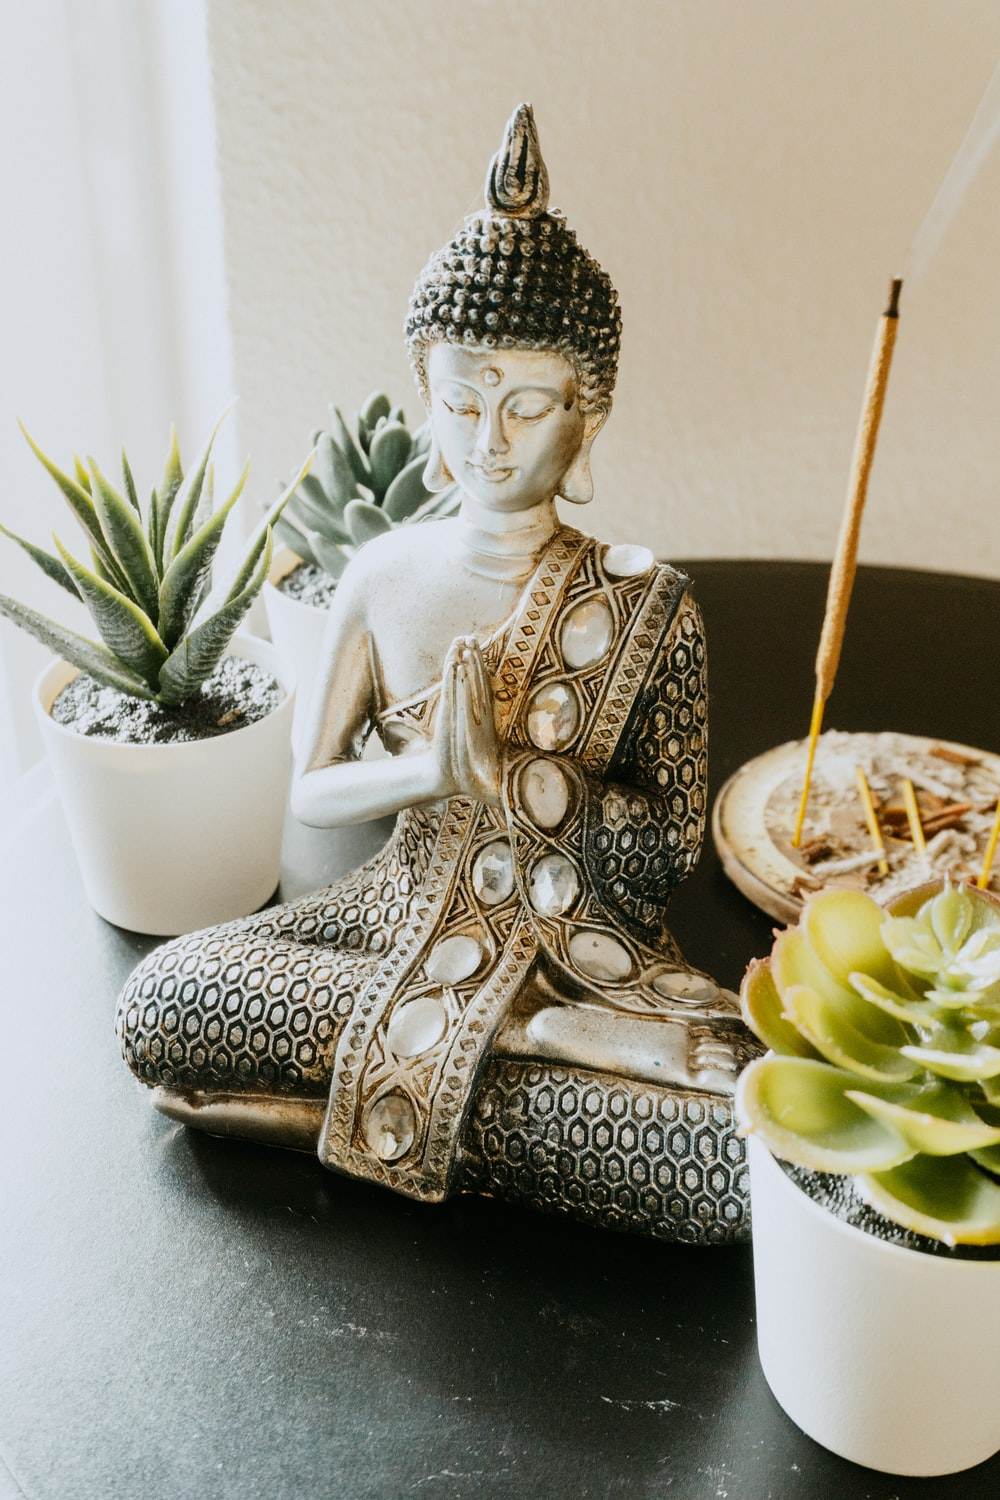 gold buddha figurine beside white ceramic cup with brown liquid